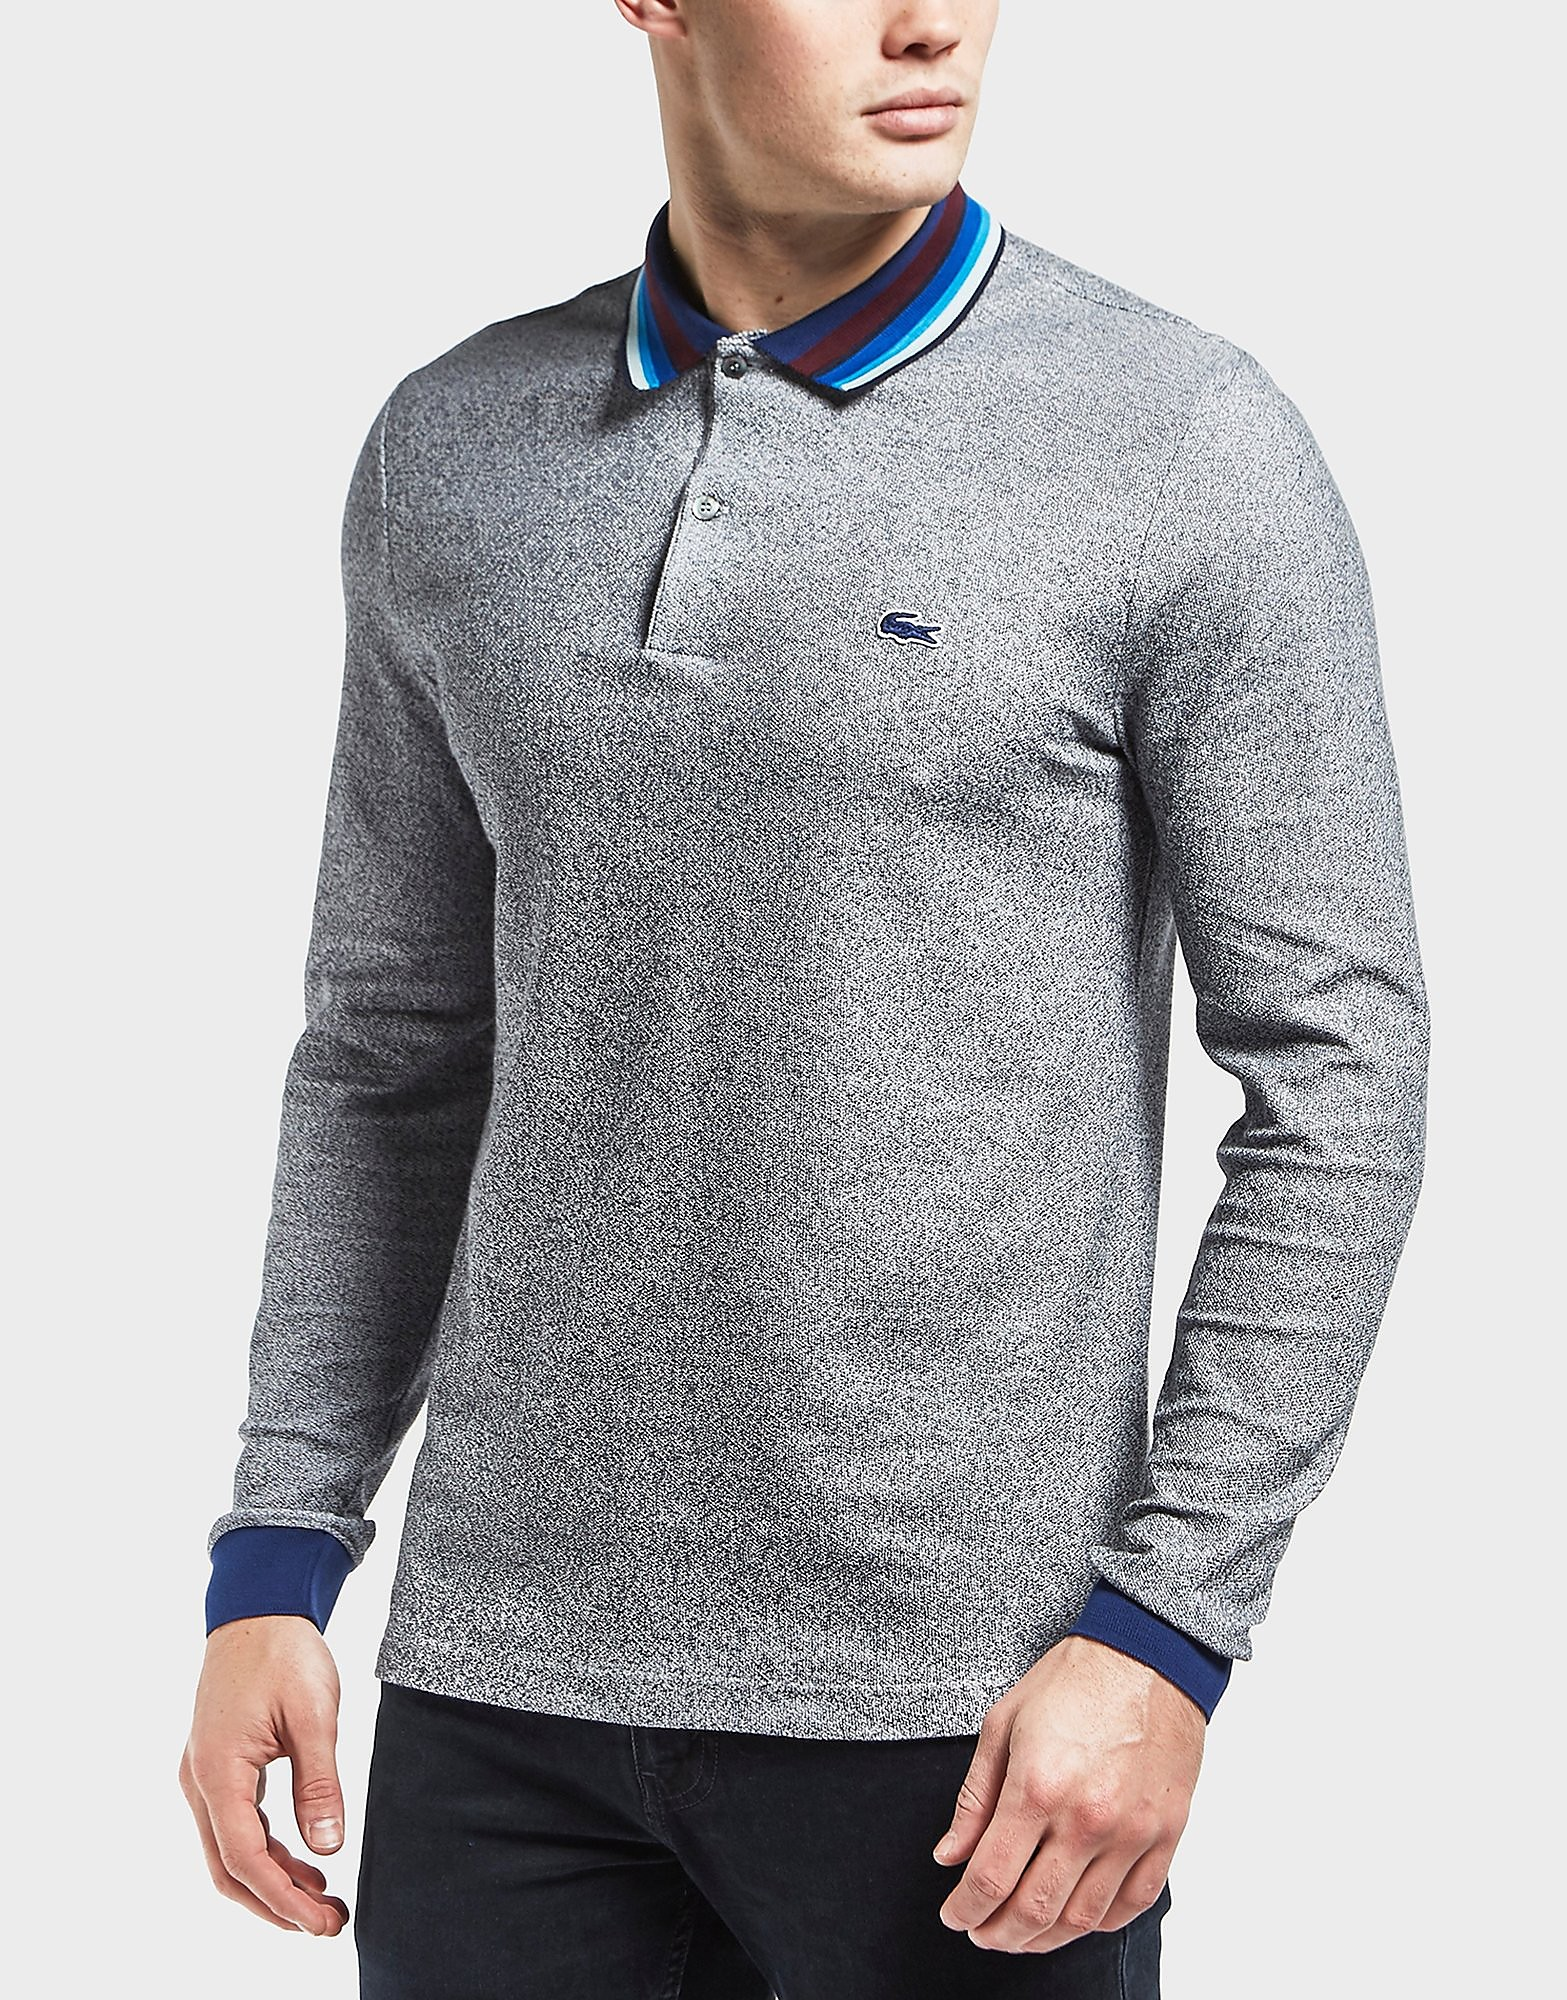 Lacoste Multi Collar Long Sleeve Polo Shirt